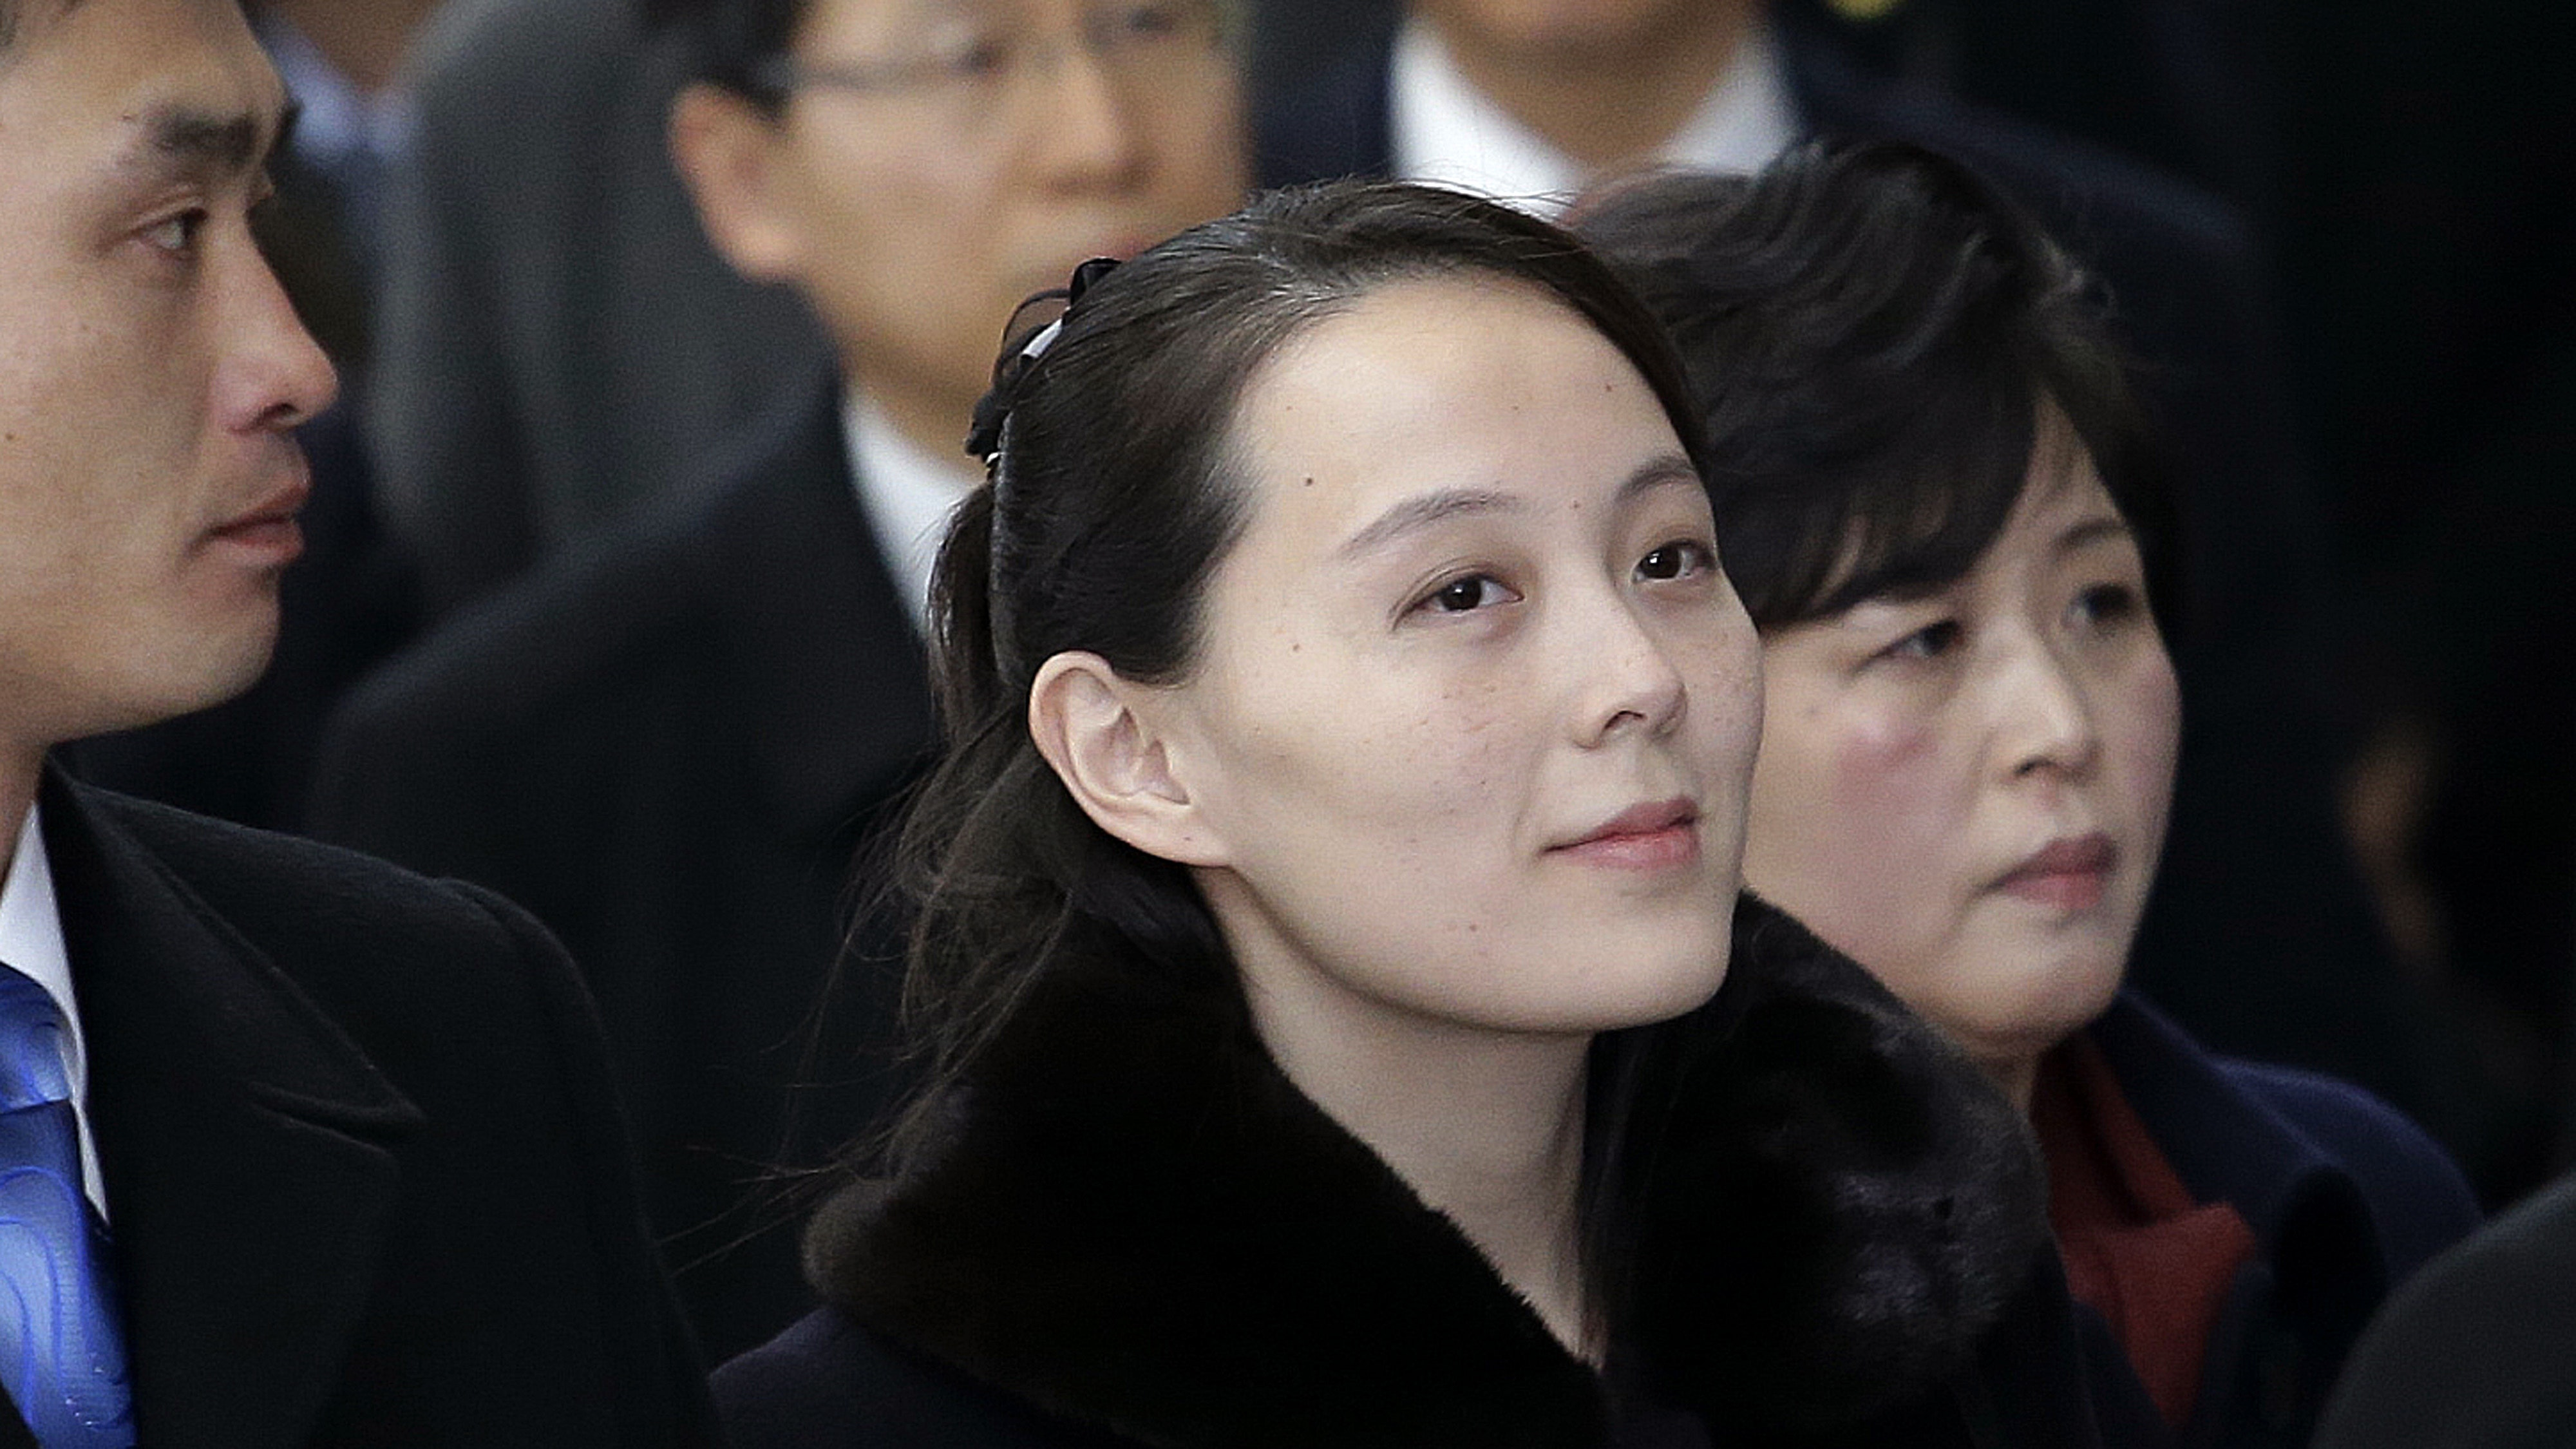 Kim Jong Un's sister shakes hands with South Korean leader ...